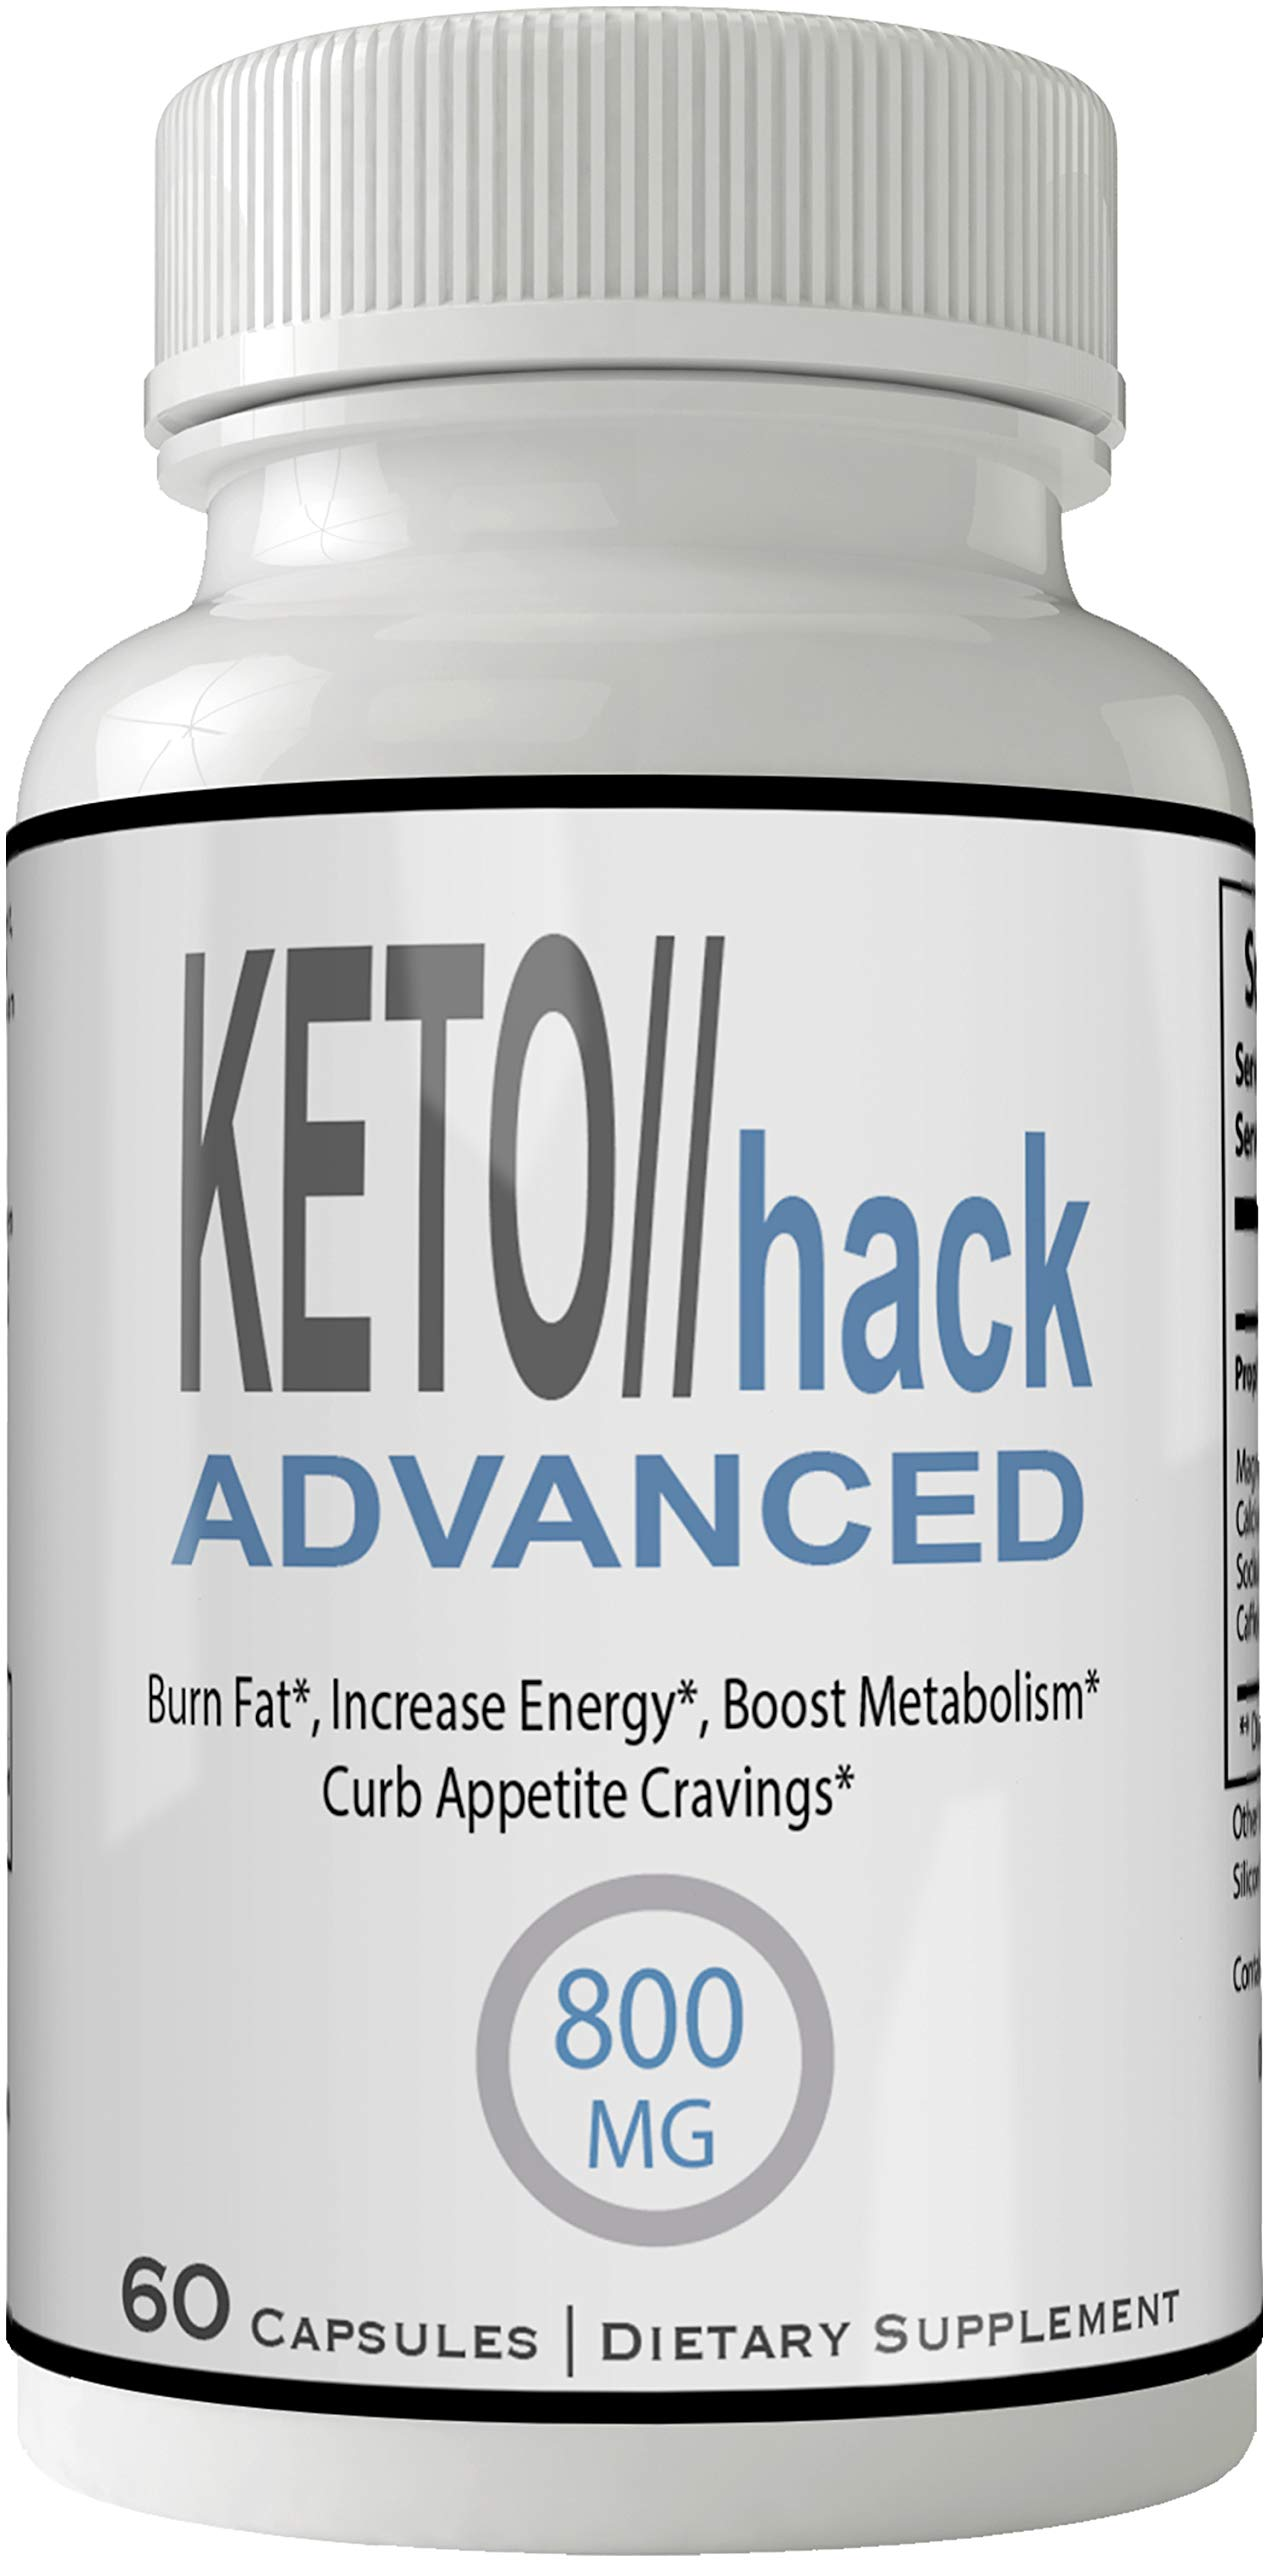 Keto Hack Advanced Capsules Weight Loss Pills Supplement, Appetite Suppressant with Ultra Advance Natural Ketogenic 800 mg Fast Formula with BHB Salts Ketone Diet Boost Metabolism